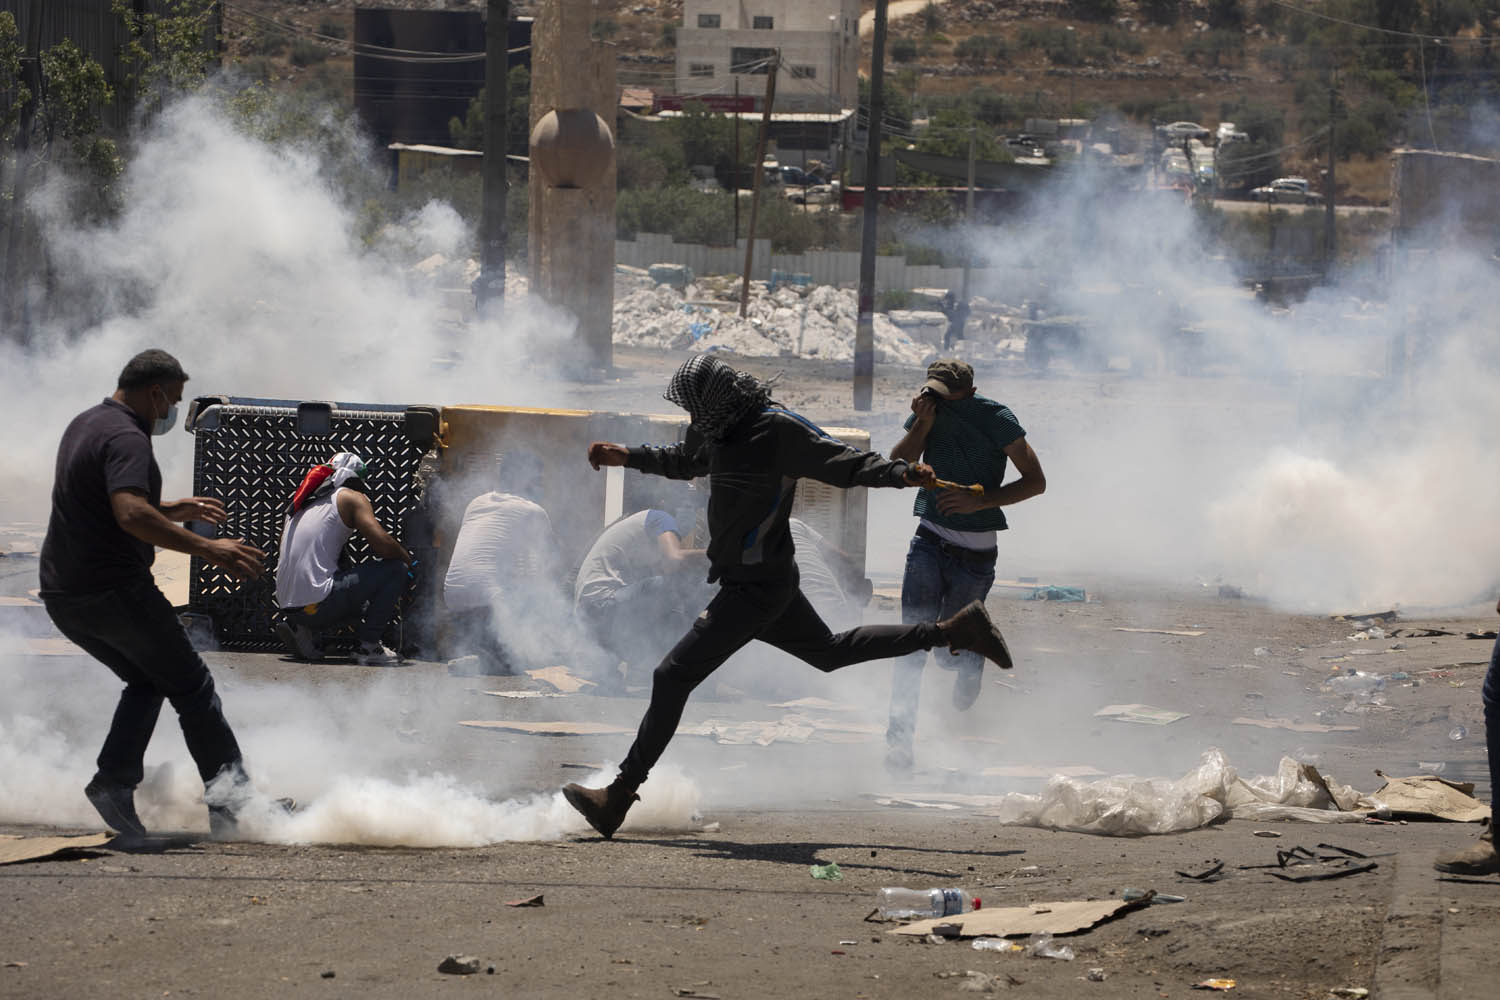 Palestinians throw stones and dodge tear gas shot by Israeli soldiers in the West Bank town of Beita, during a protest against the settlement outpost of Eviatar, June 18, 2021. (Oren Ziv)